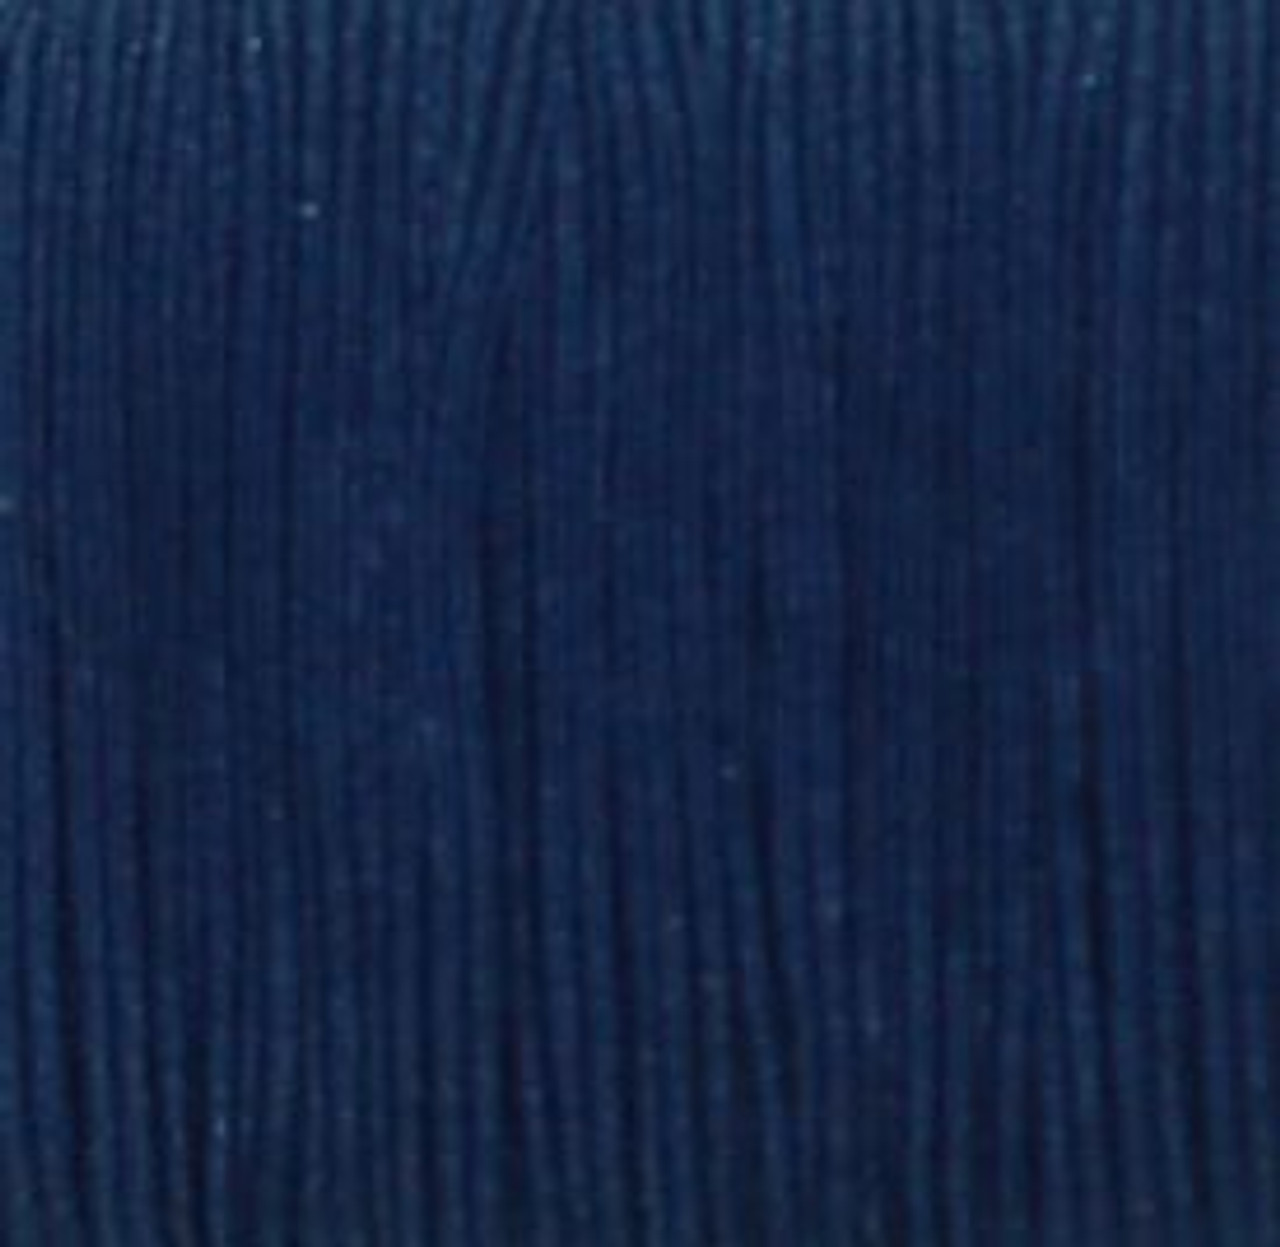 Navy Skinny Elastic for sewing, baby headbands and available in 24 colors.